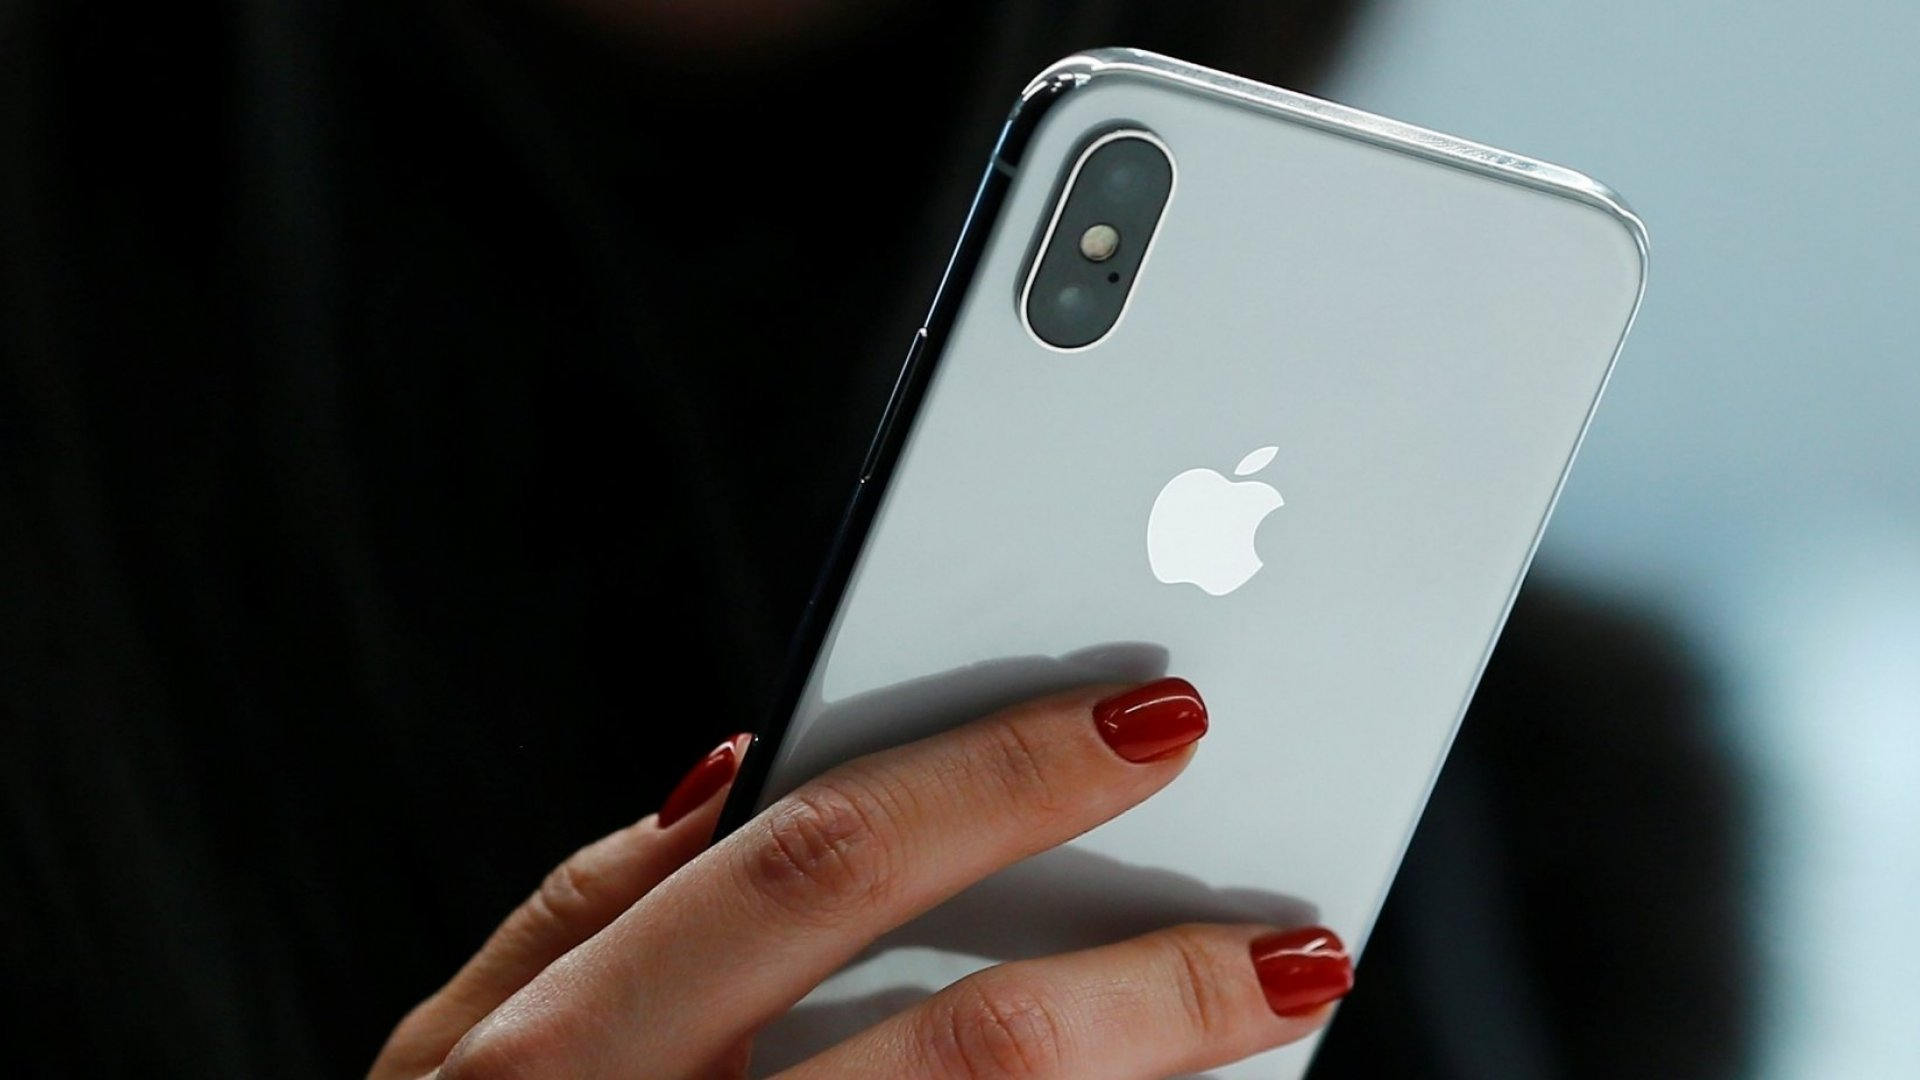 It's Official: The iPhone X Is the Best Gadget Ever Made. Here's Why